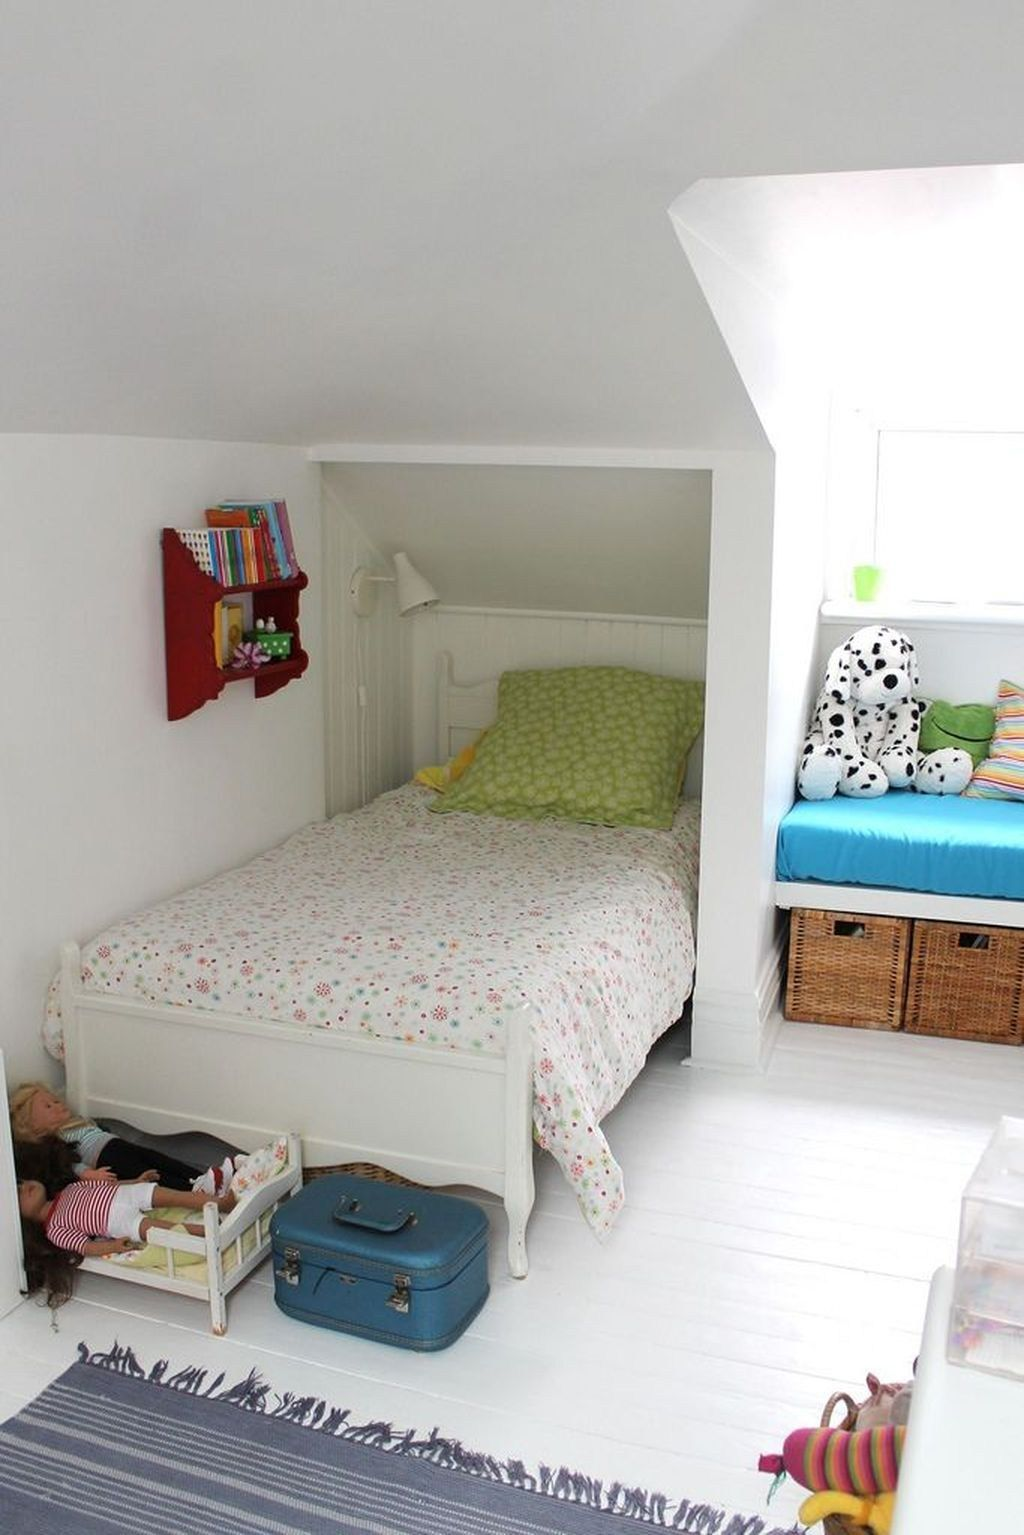 Stunning Small Attic Bedroom Design Ideas 35 Attic Bedroom Small Attic Bedroom Designs Small Bedroom Ideas On A Budget